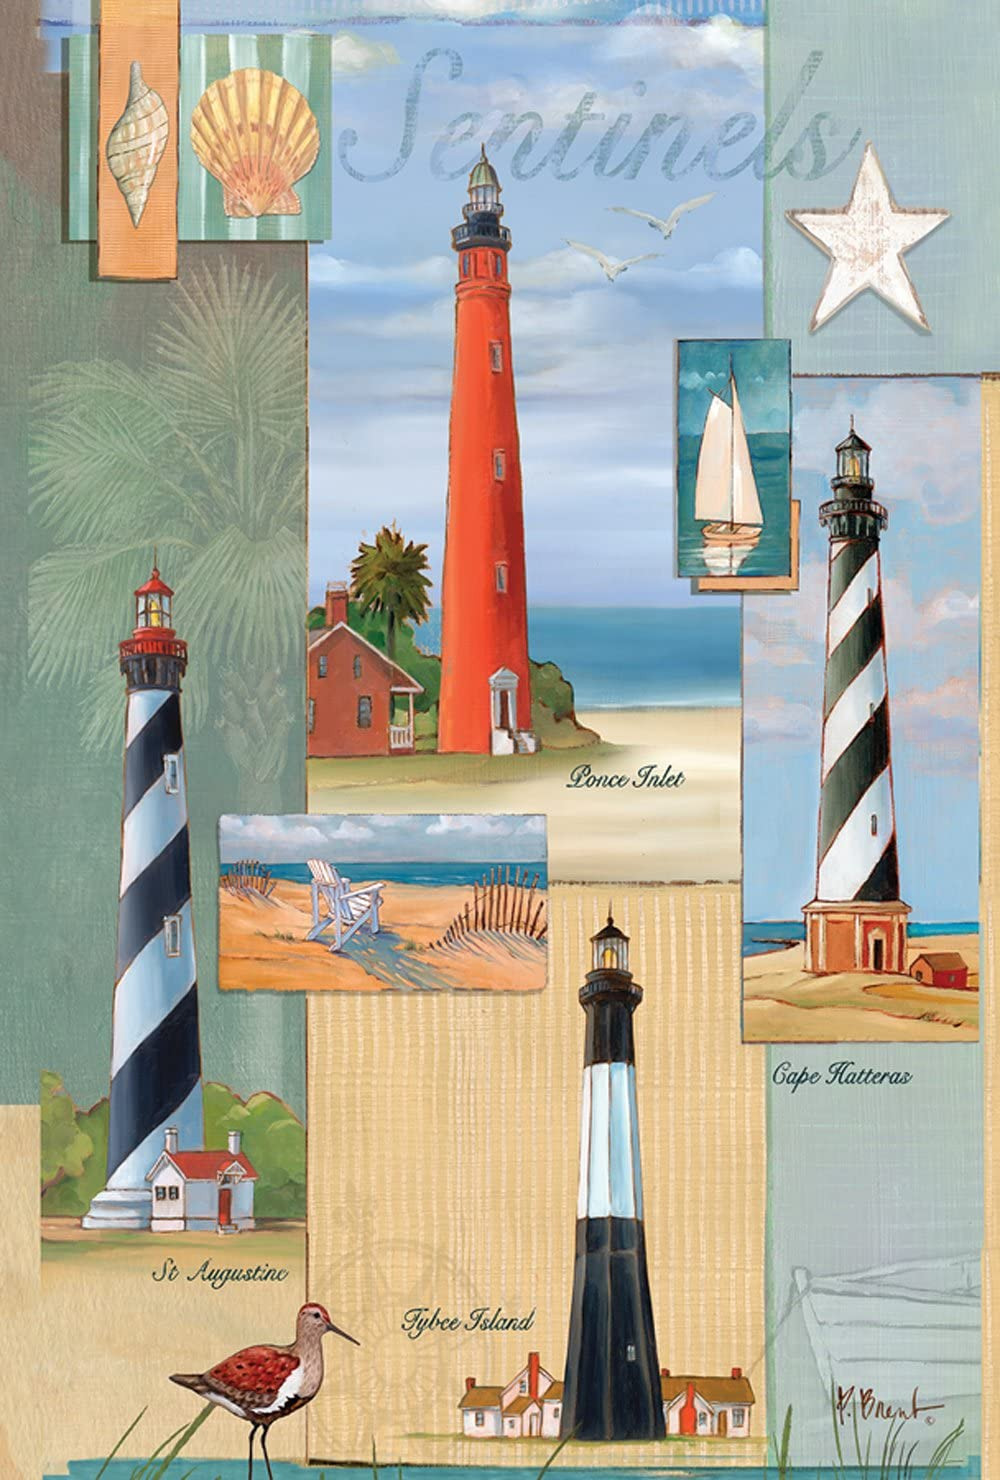 "Toland Home Garden 109857 28 X 40 Inch Decorative, House Flag (28"" x 40""), Sentinel Lighthouse Collage"